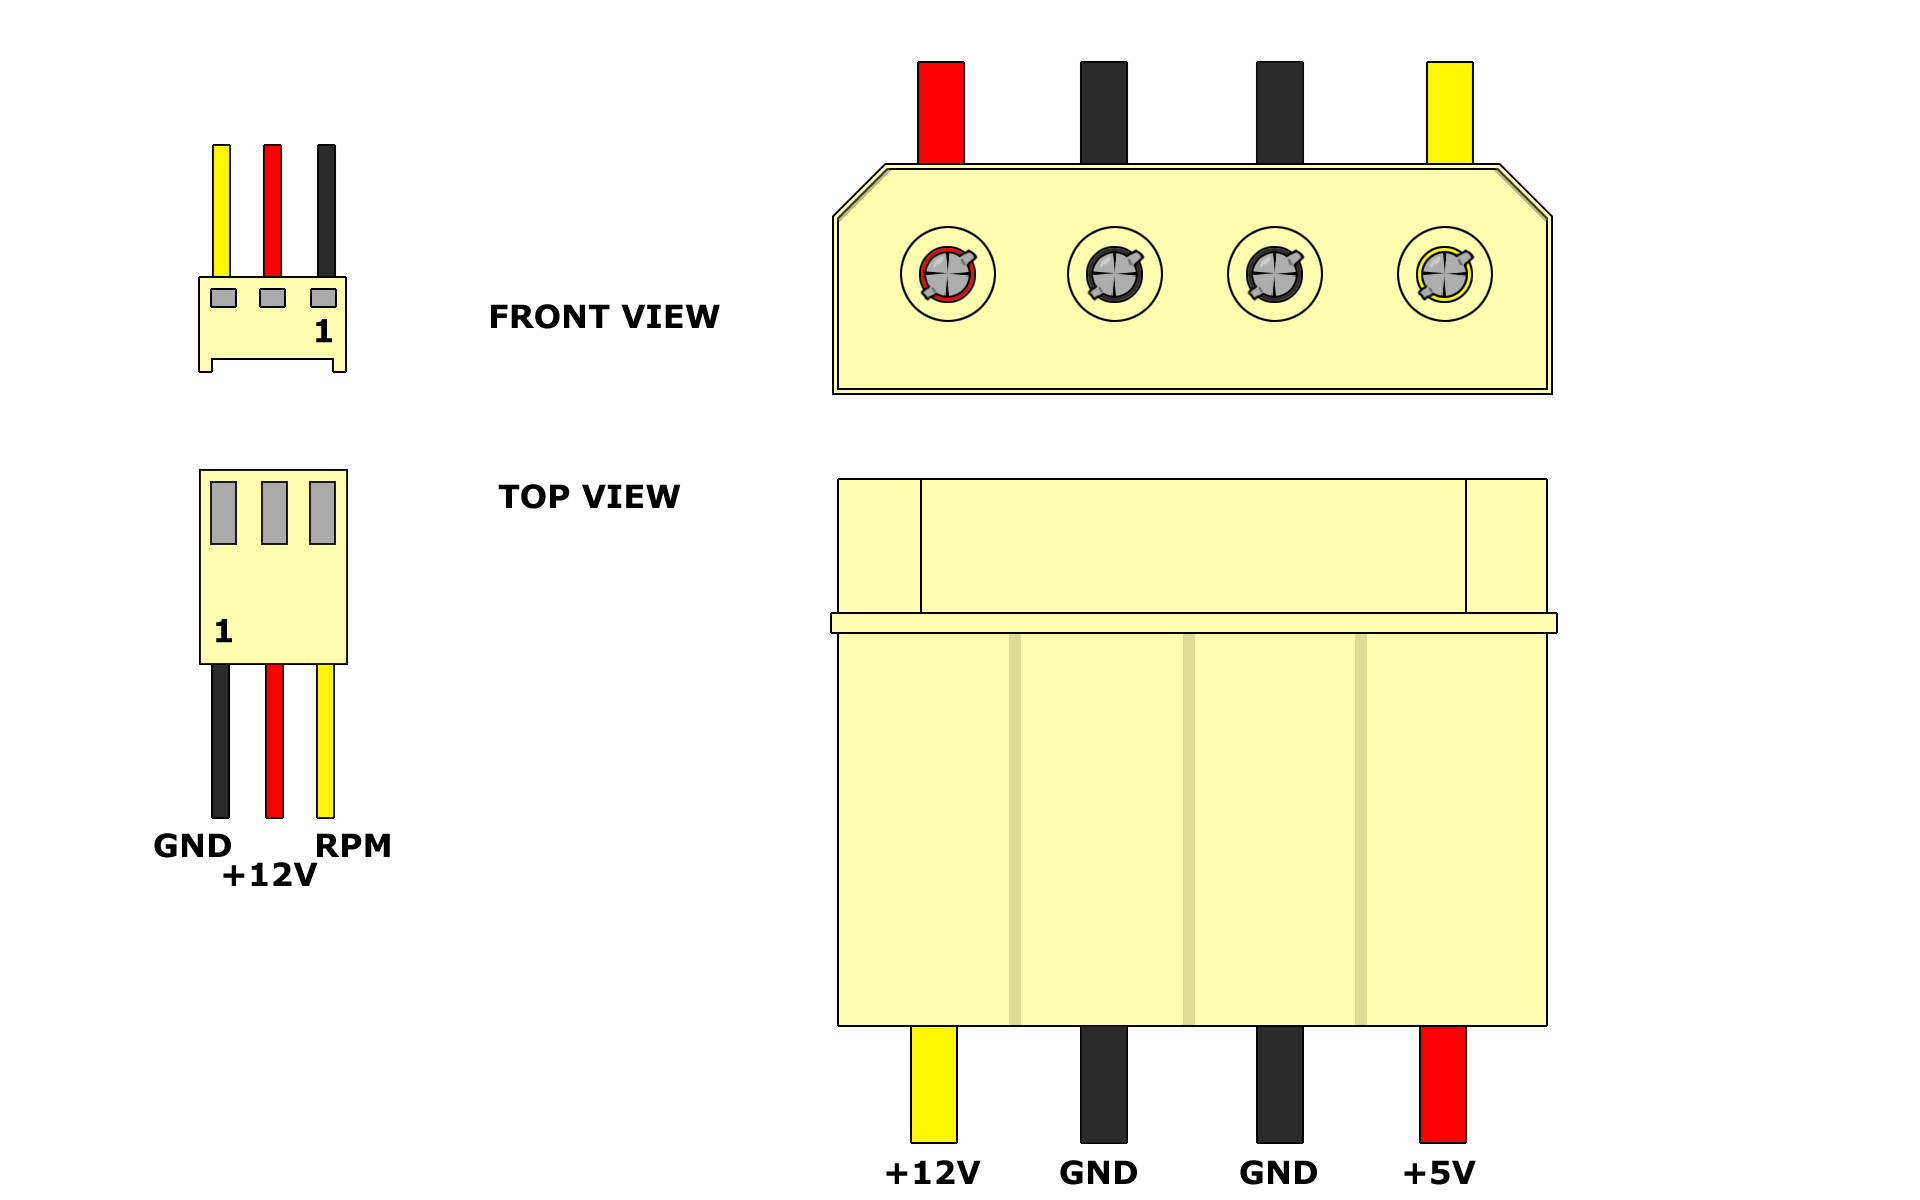 4 Pin Power Connector Wiring Diagram - All Wiring Diagram Data - 3 Pin Trailer Wiring Diagram